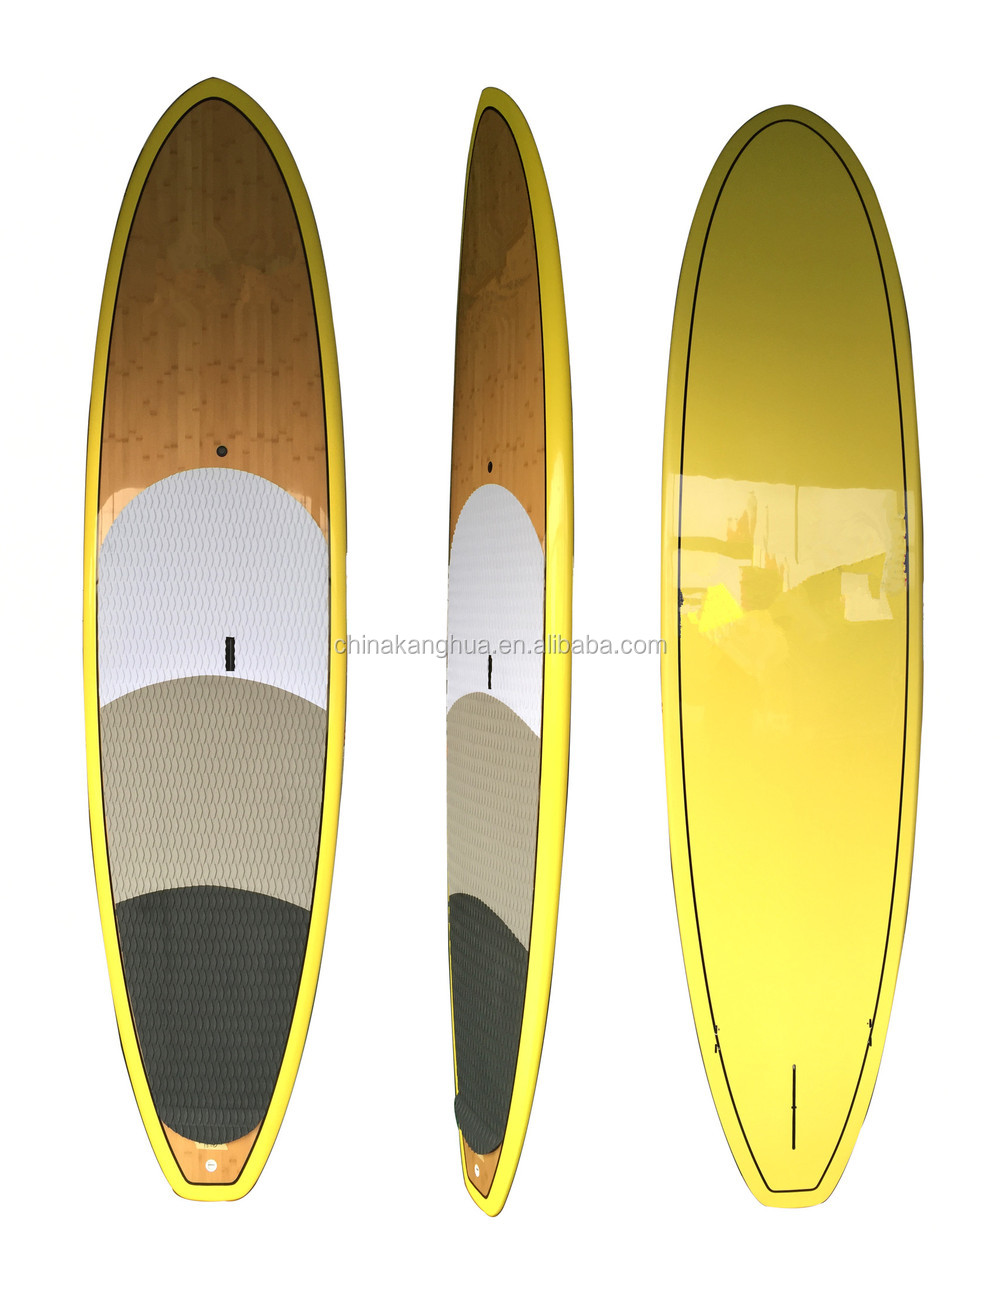 Bamboo epoxy stand up paddle board/Sup paddle boards